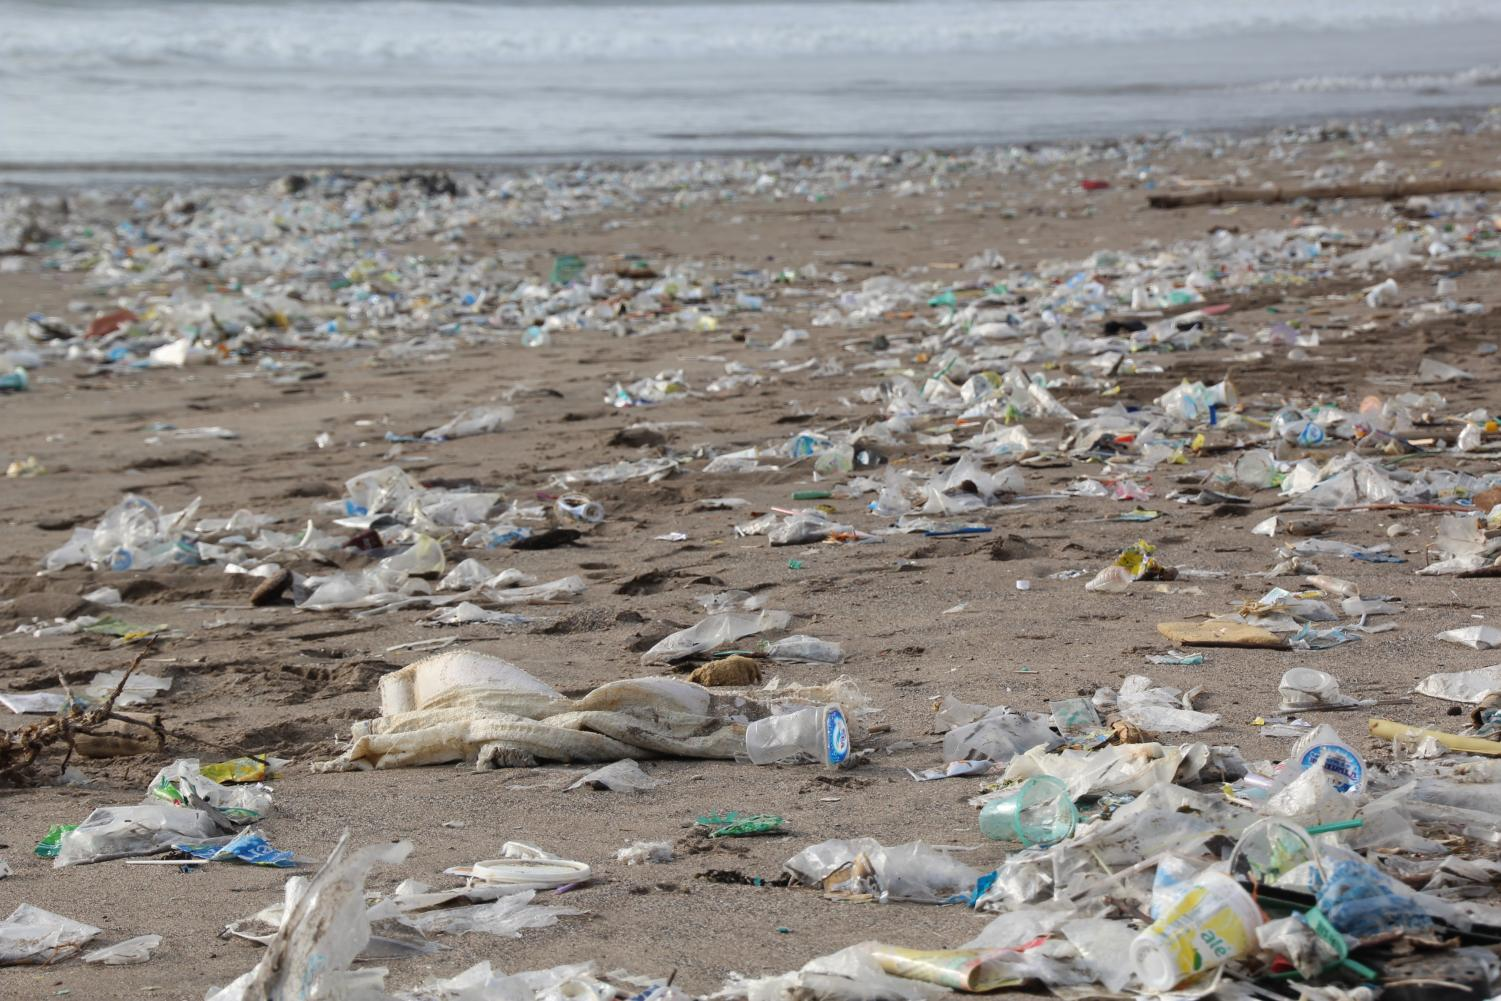 Columnist Hayley urges people to think about the consequences of the waste they produce during this upcoming Earth Day.